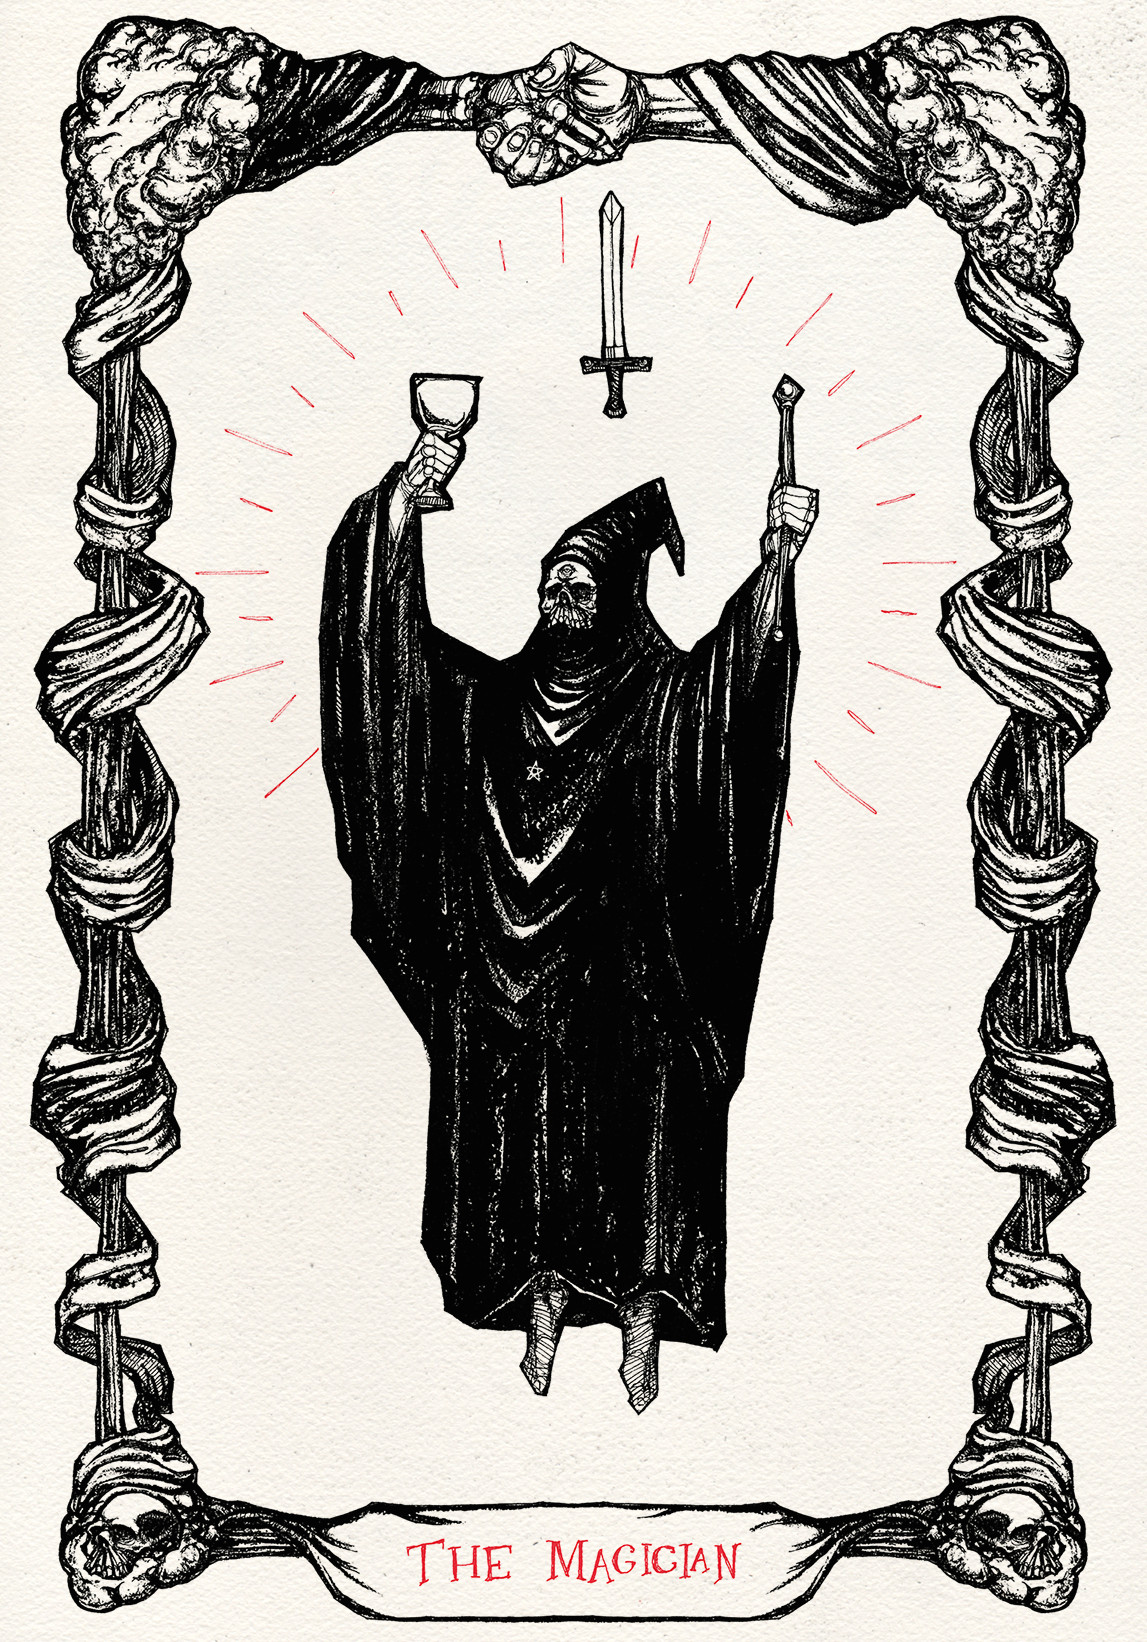 finished drawing up the next card in my tarot set the magician goth darkness nature othercoolsimilarthings